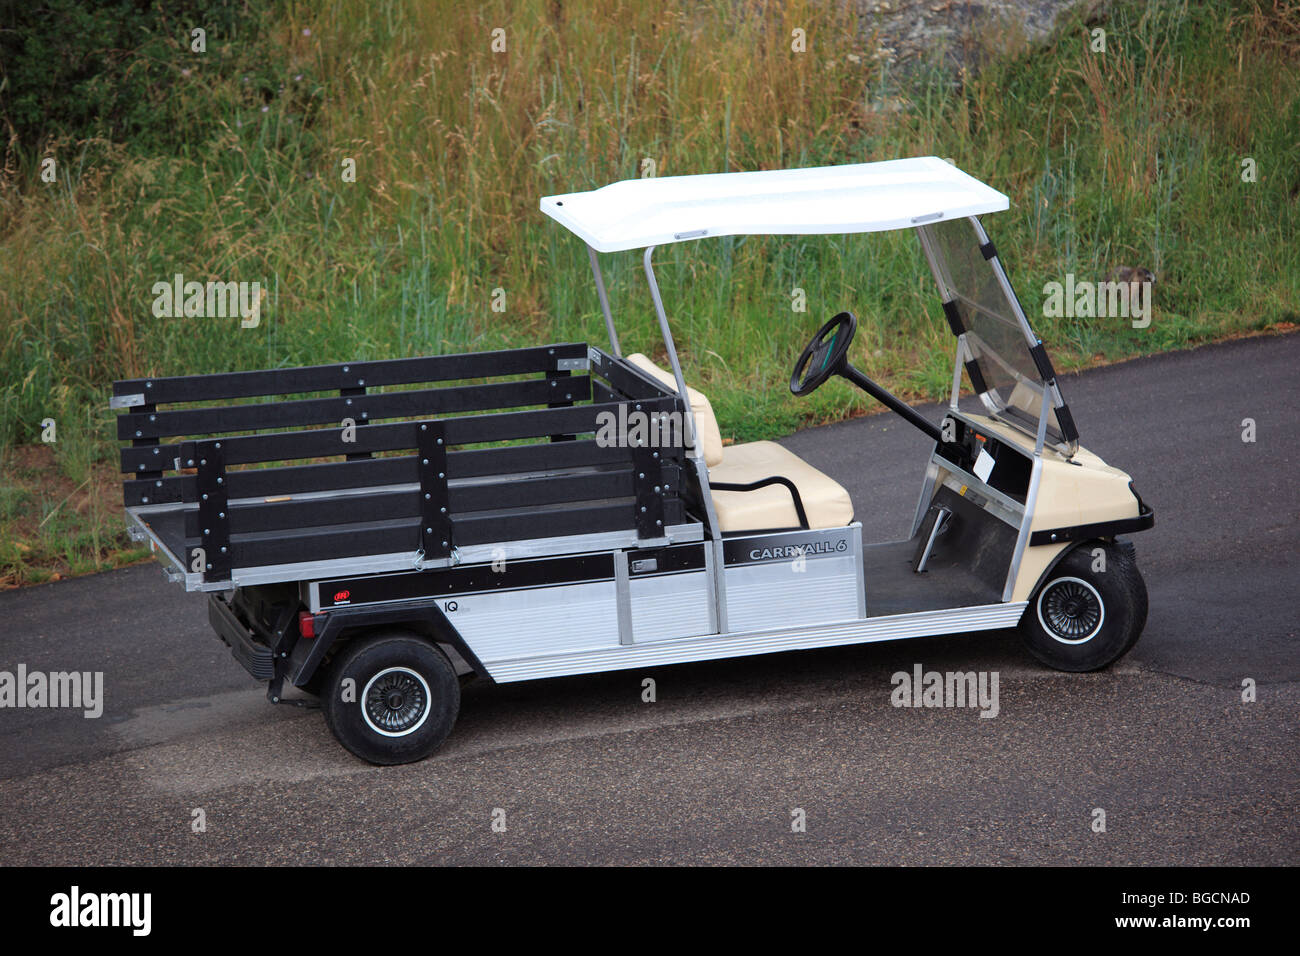 Electric vehicle used on a golf course. - Stock Image